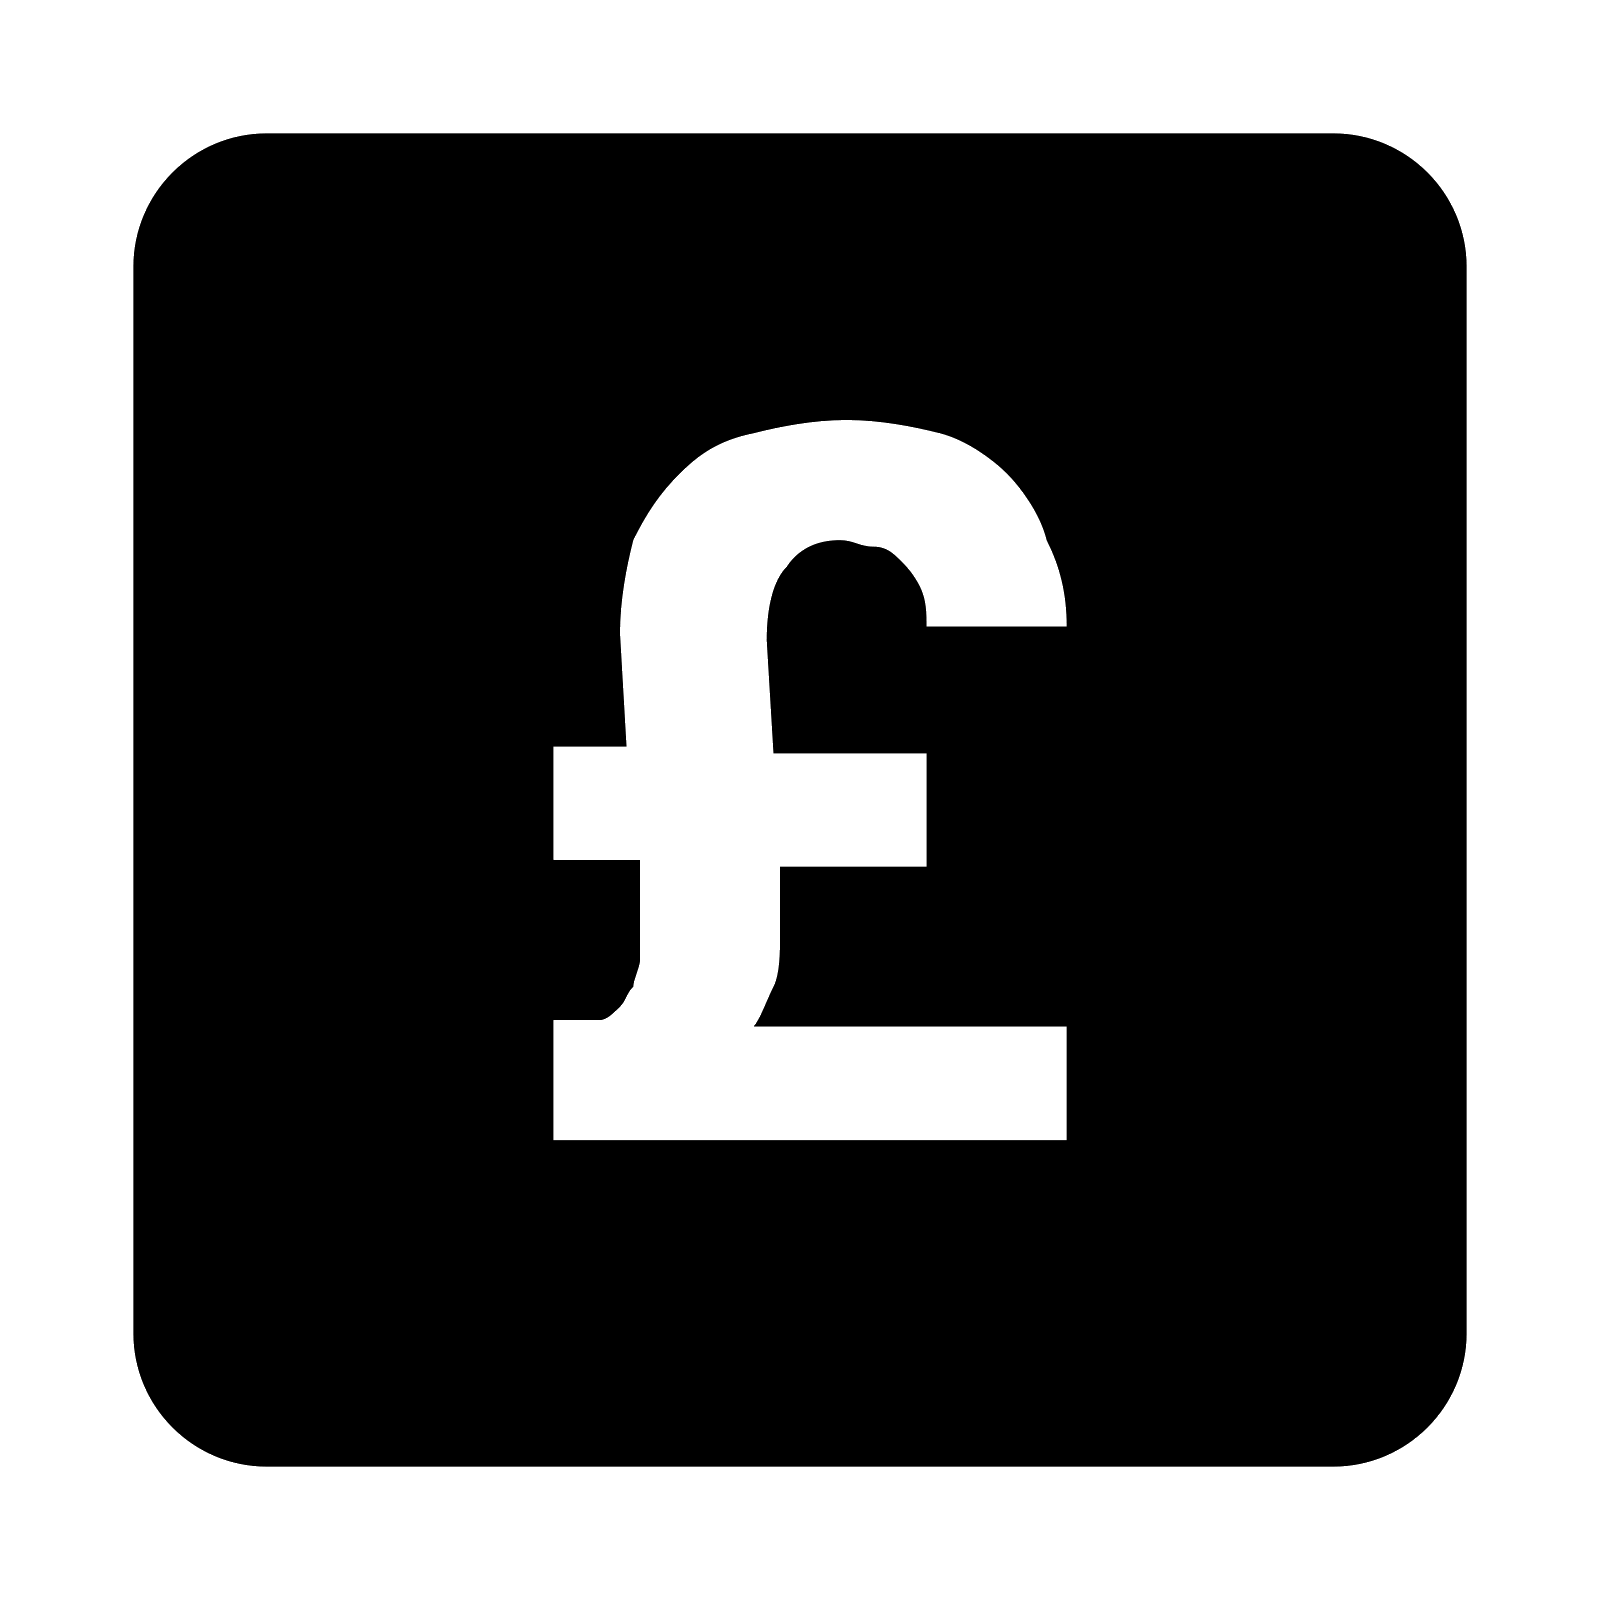 hight resolution of money symbols png british pound icon free